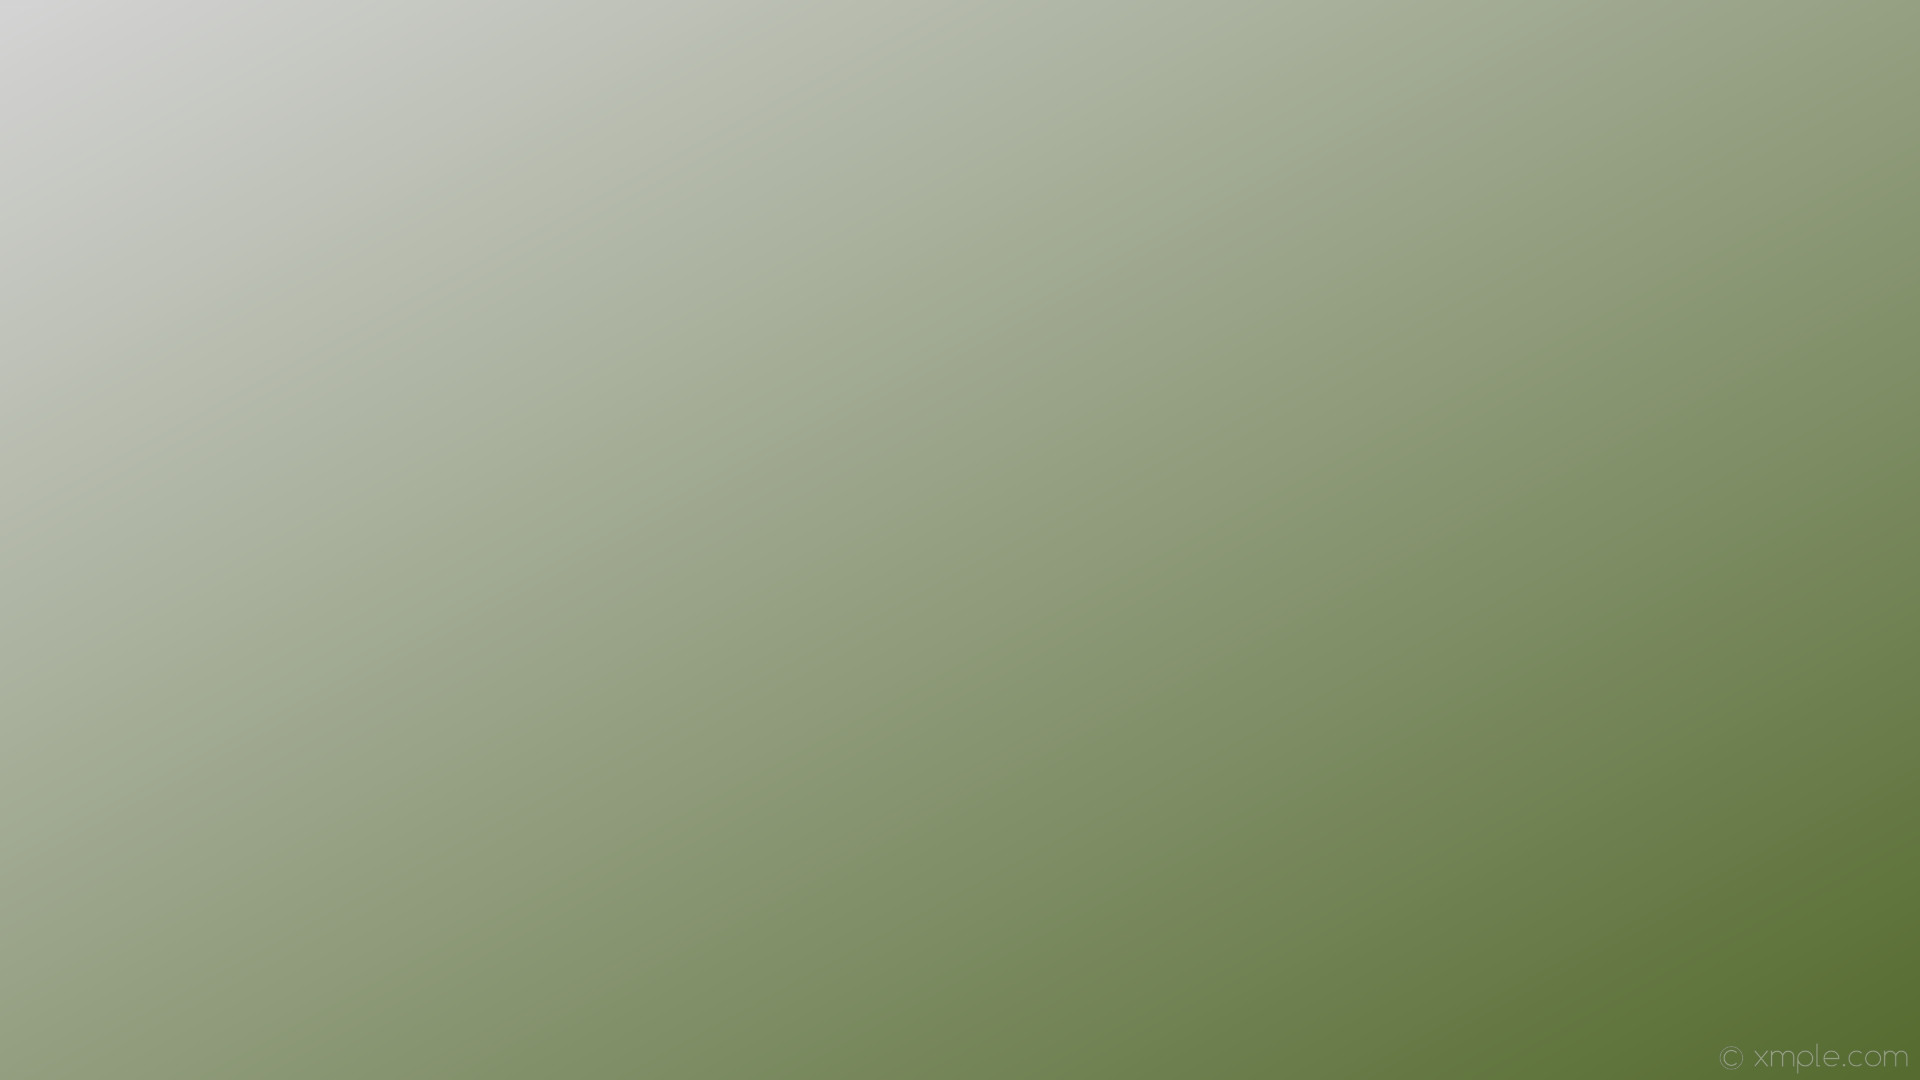 Olive green wallpaper 72 images - Olive green and grey ...